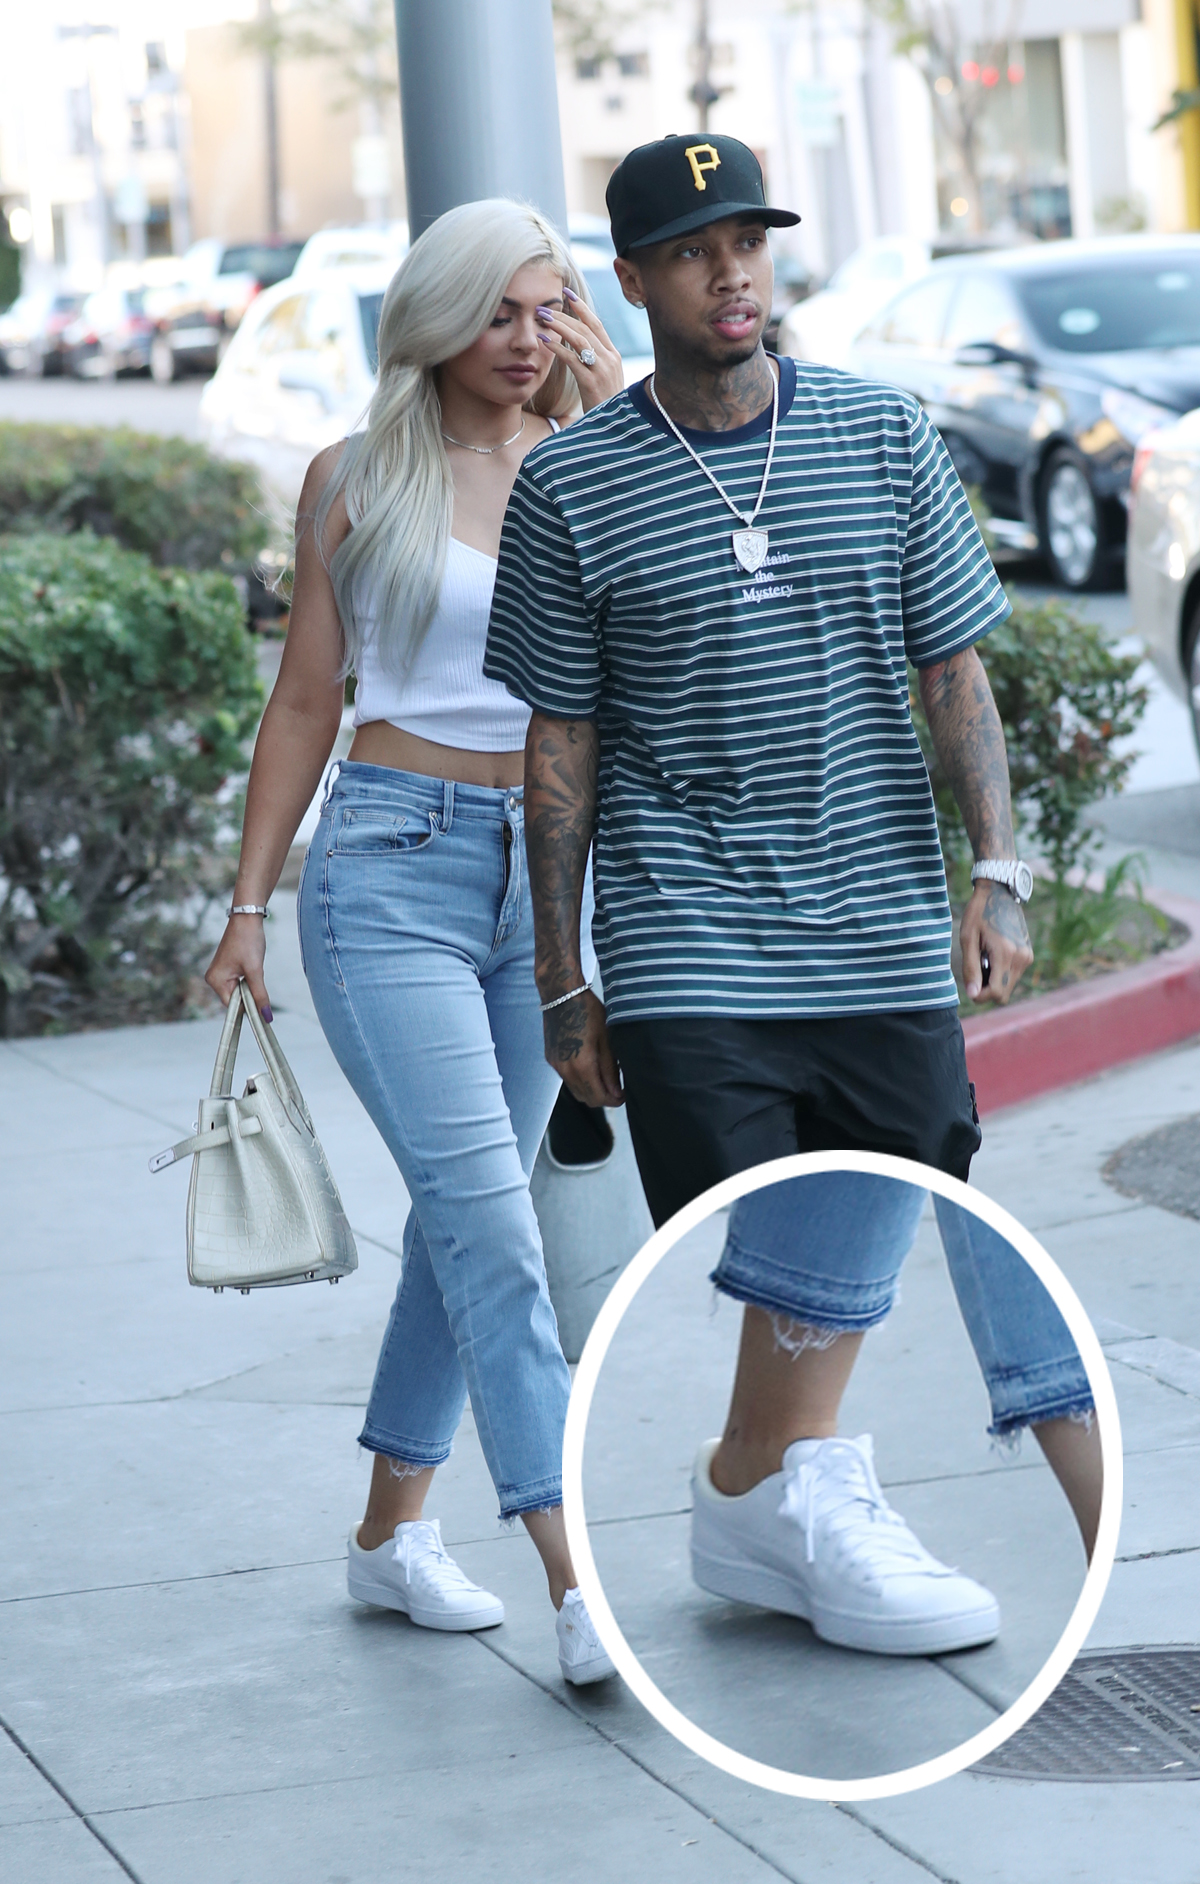 Kylie Jenner had Tyga tattoo, but covered it up